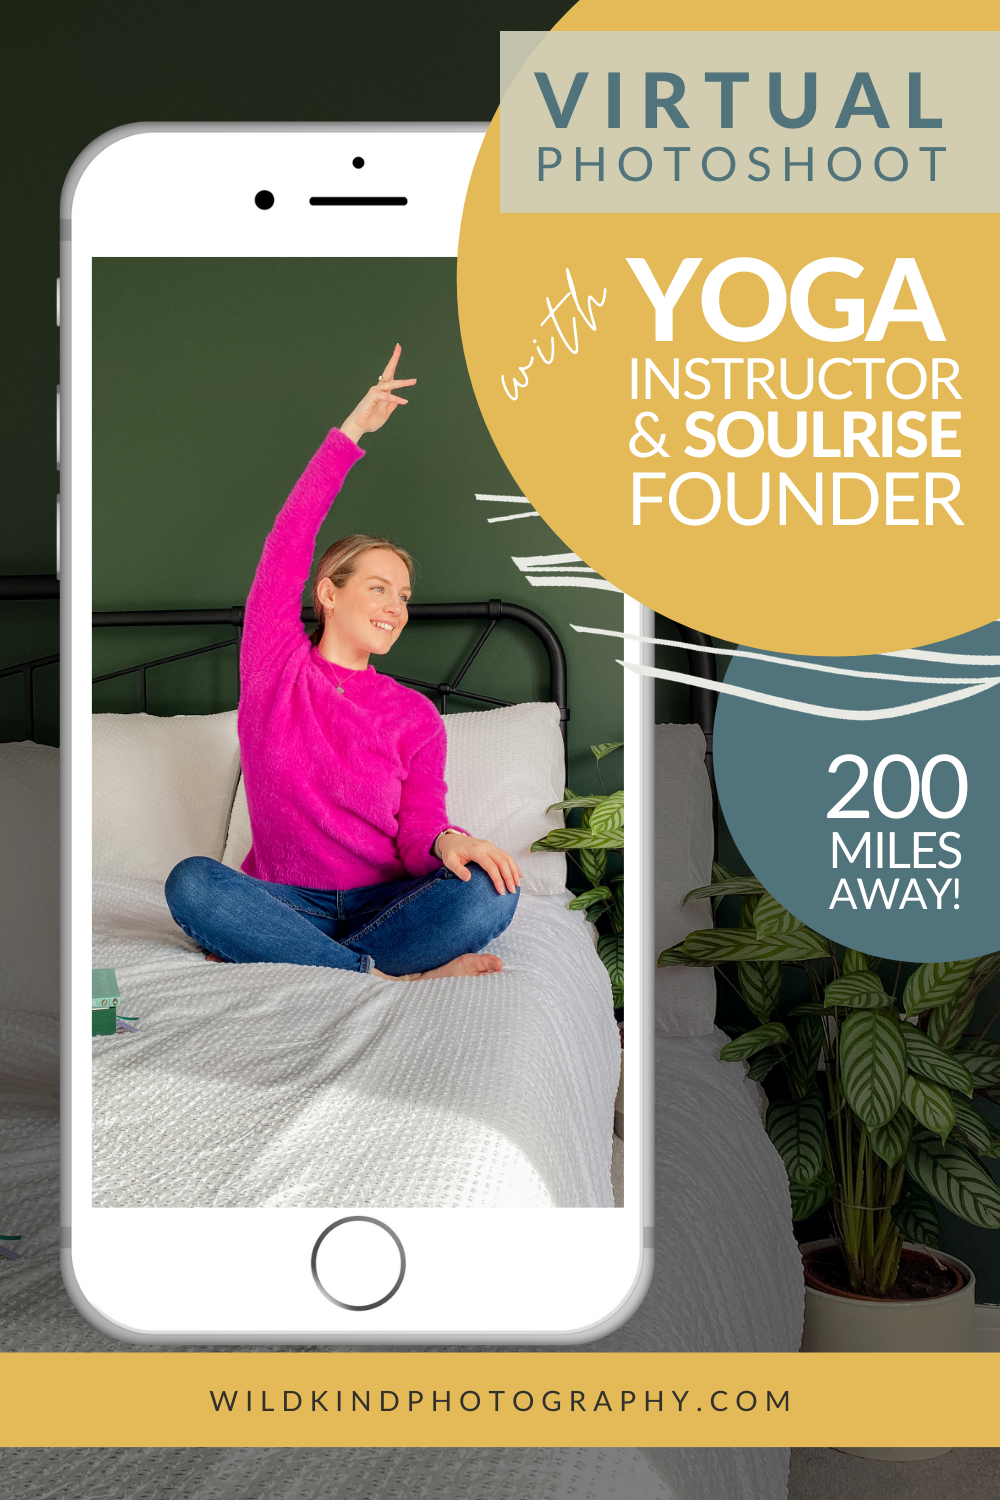 Yoga instructor stretching on bed against dark green wall, posing for her virtual brand photoshoot.